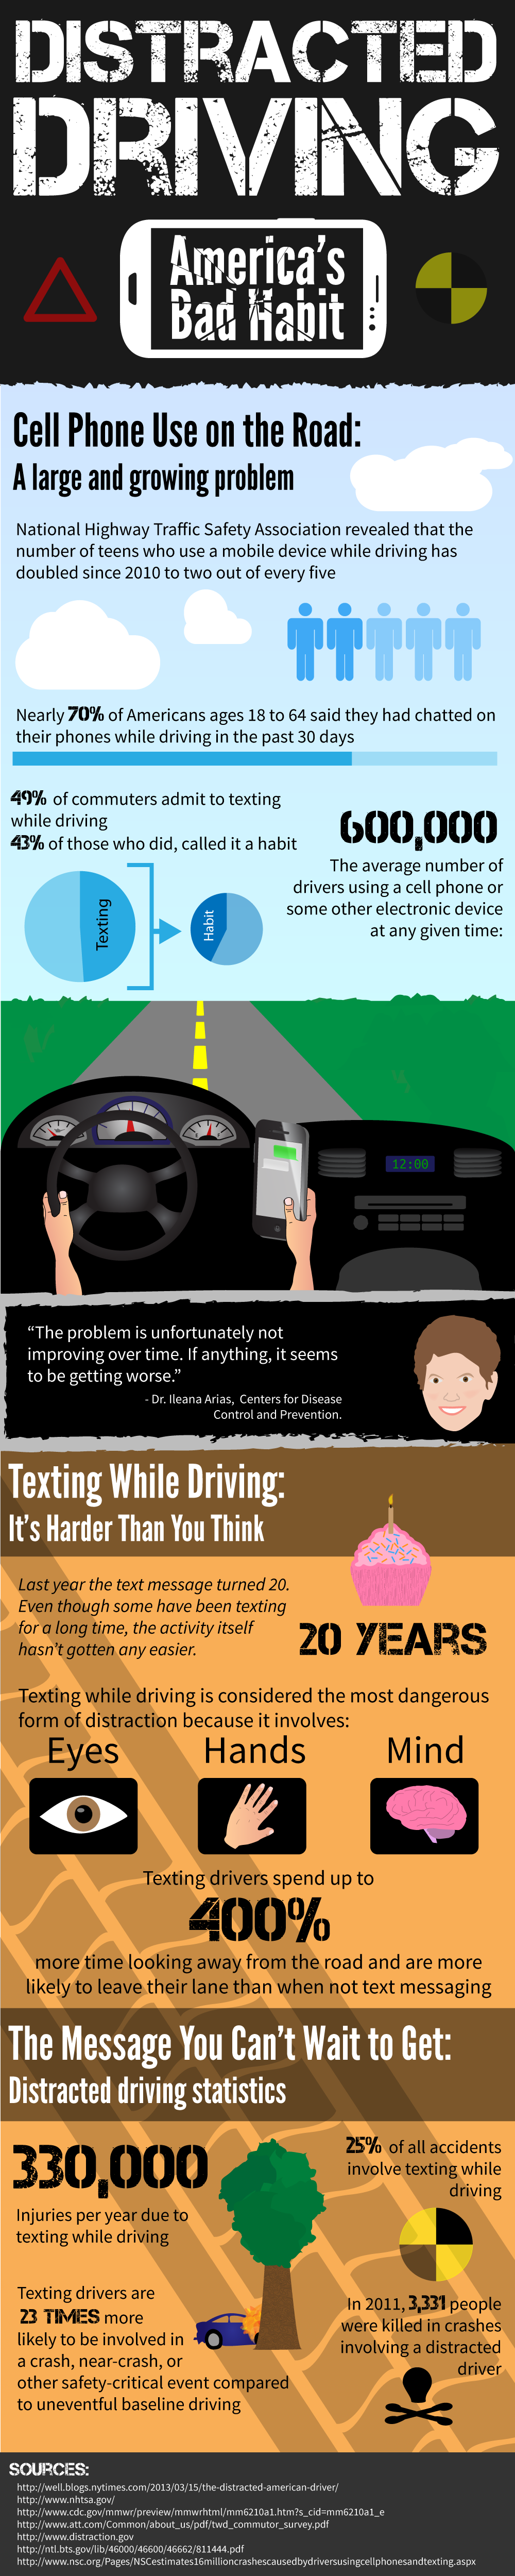 infographic on distracted driving